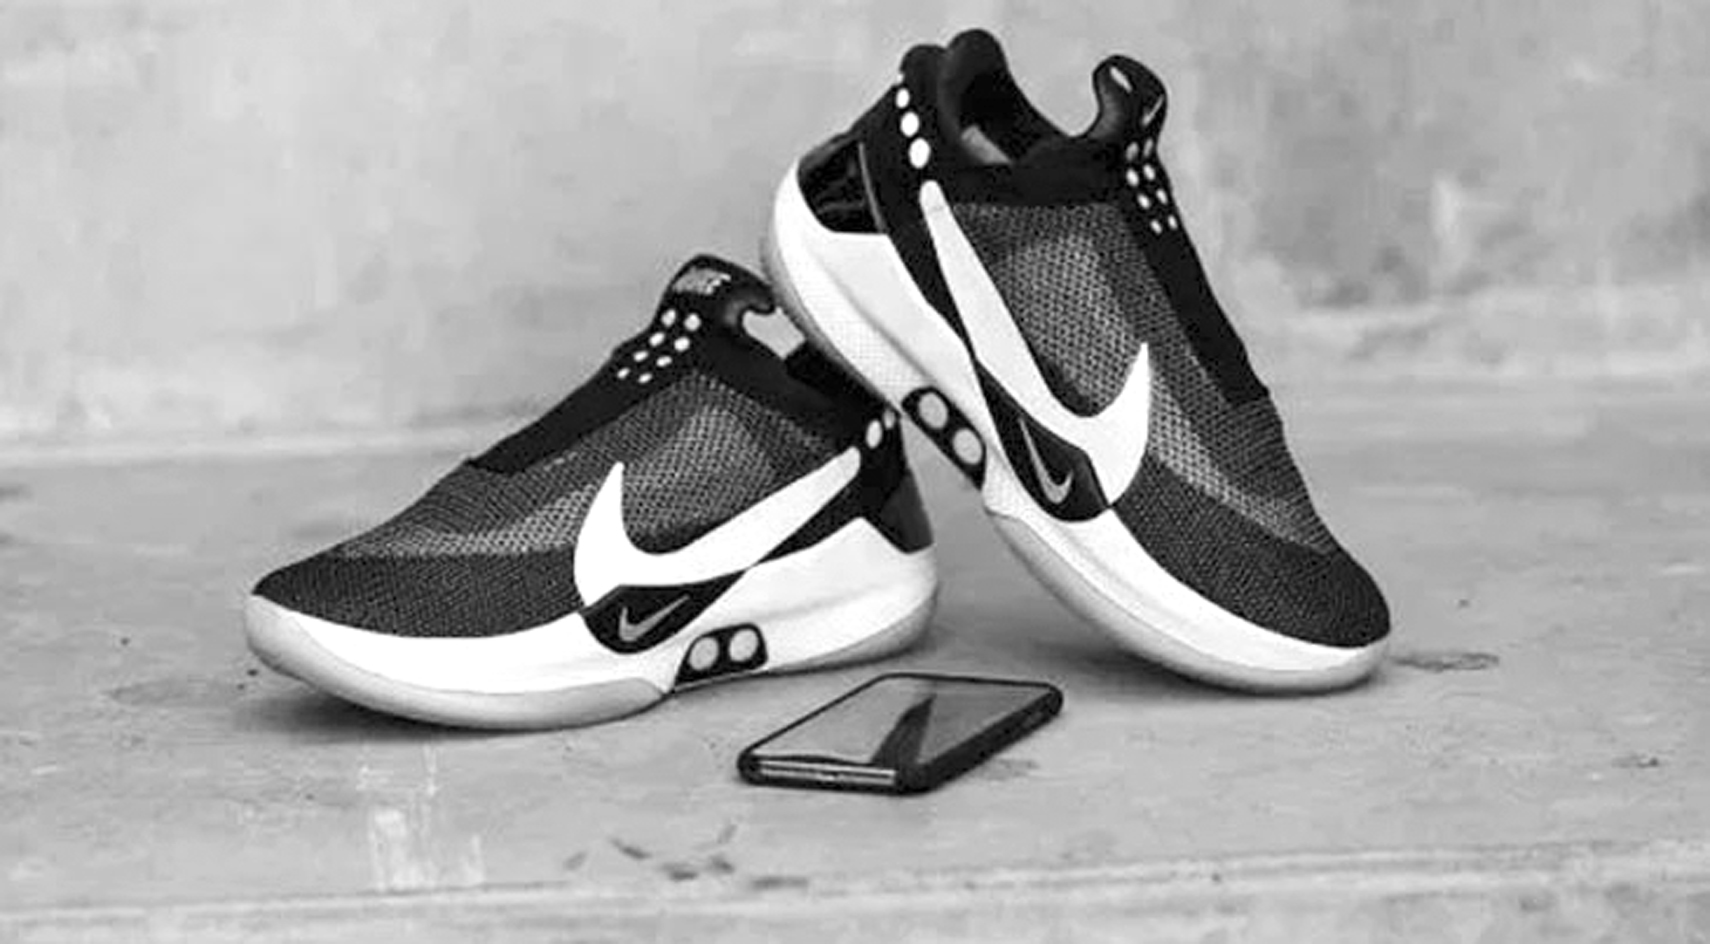 f6e3865ea5 Nike unveils self-lacing shoes controlled by smartphone app